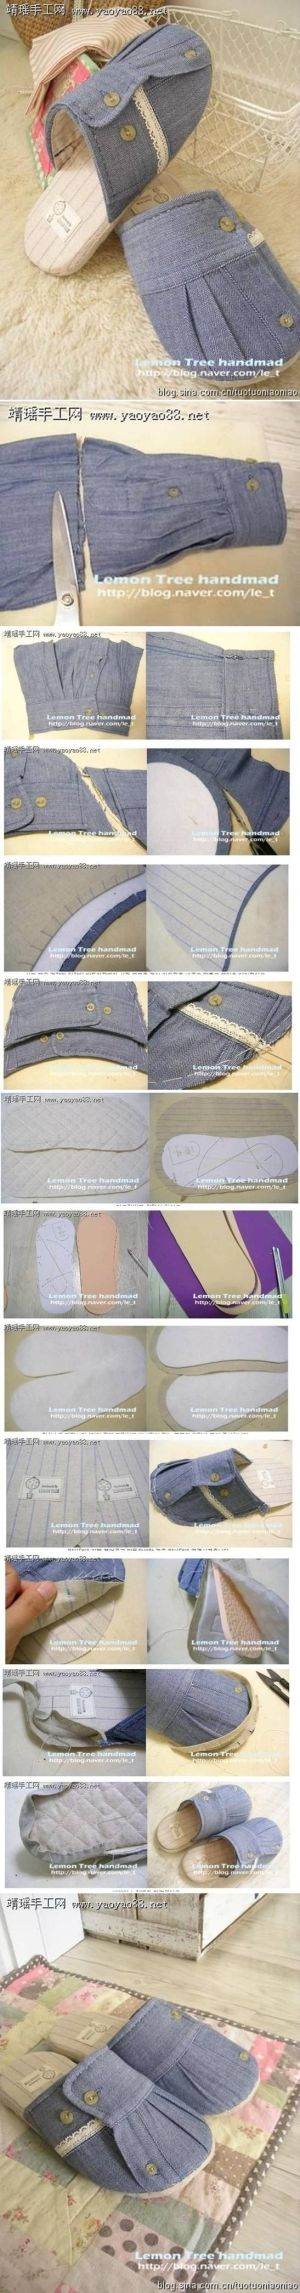 DIY Old Clothes Cuff Slipper DIY Old Clothes Cuff Slipper by conan